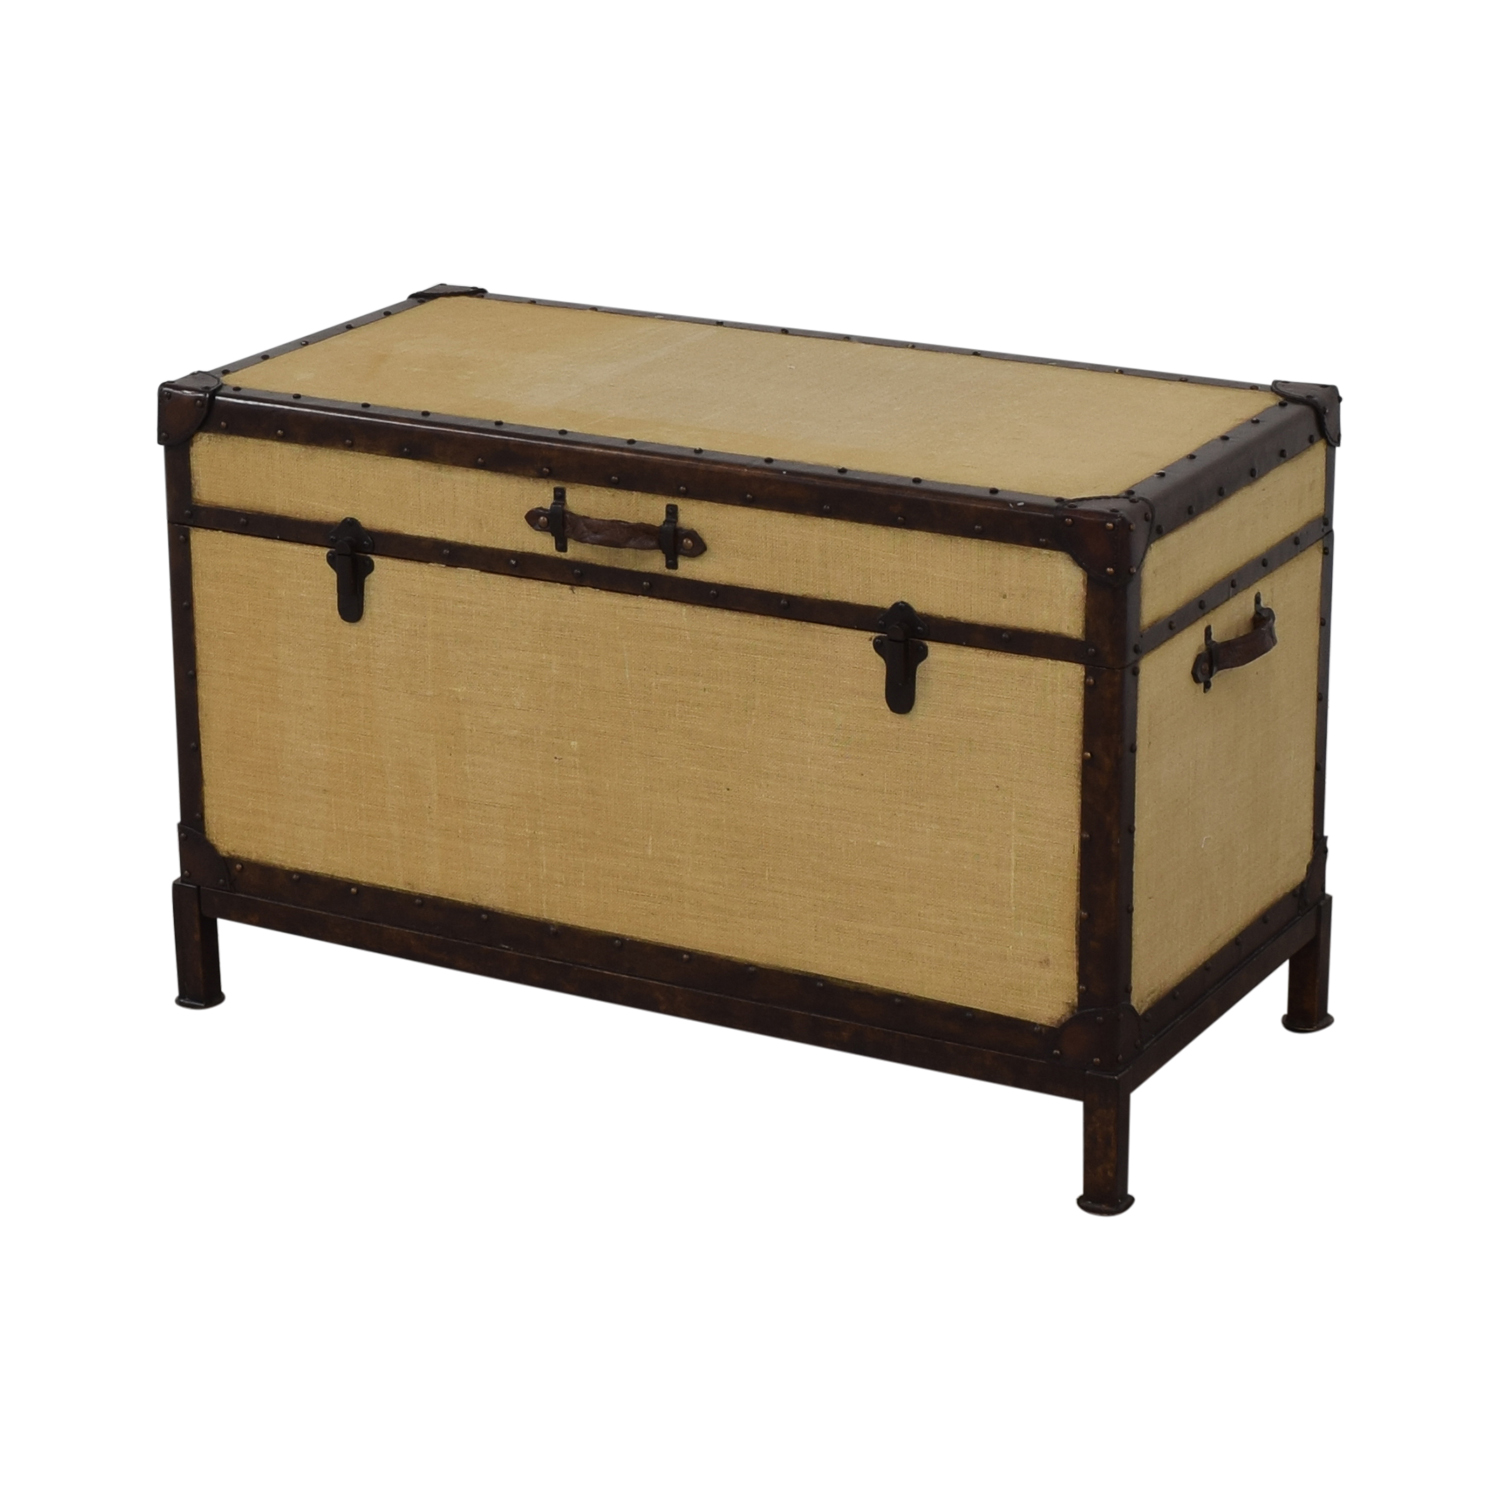 Pottery Barn Pottery Barn Redford End of Bed Trunk used